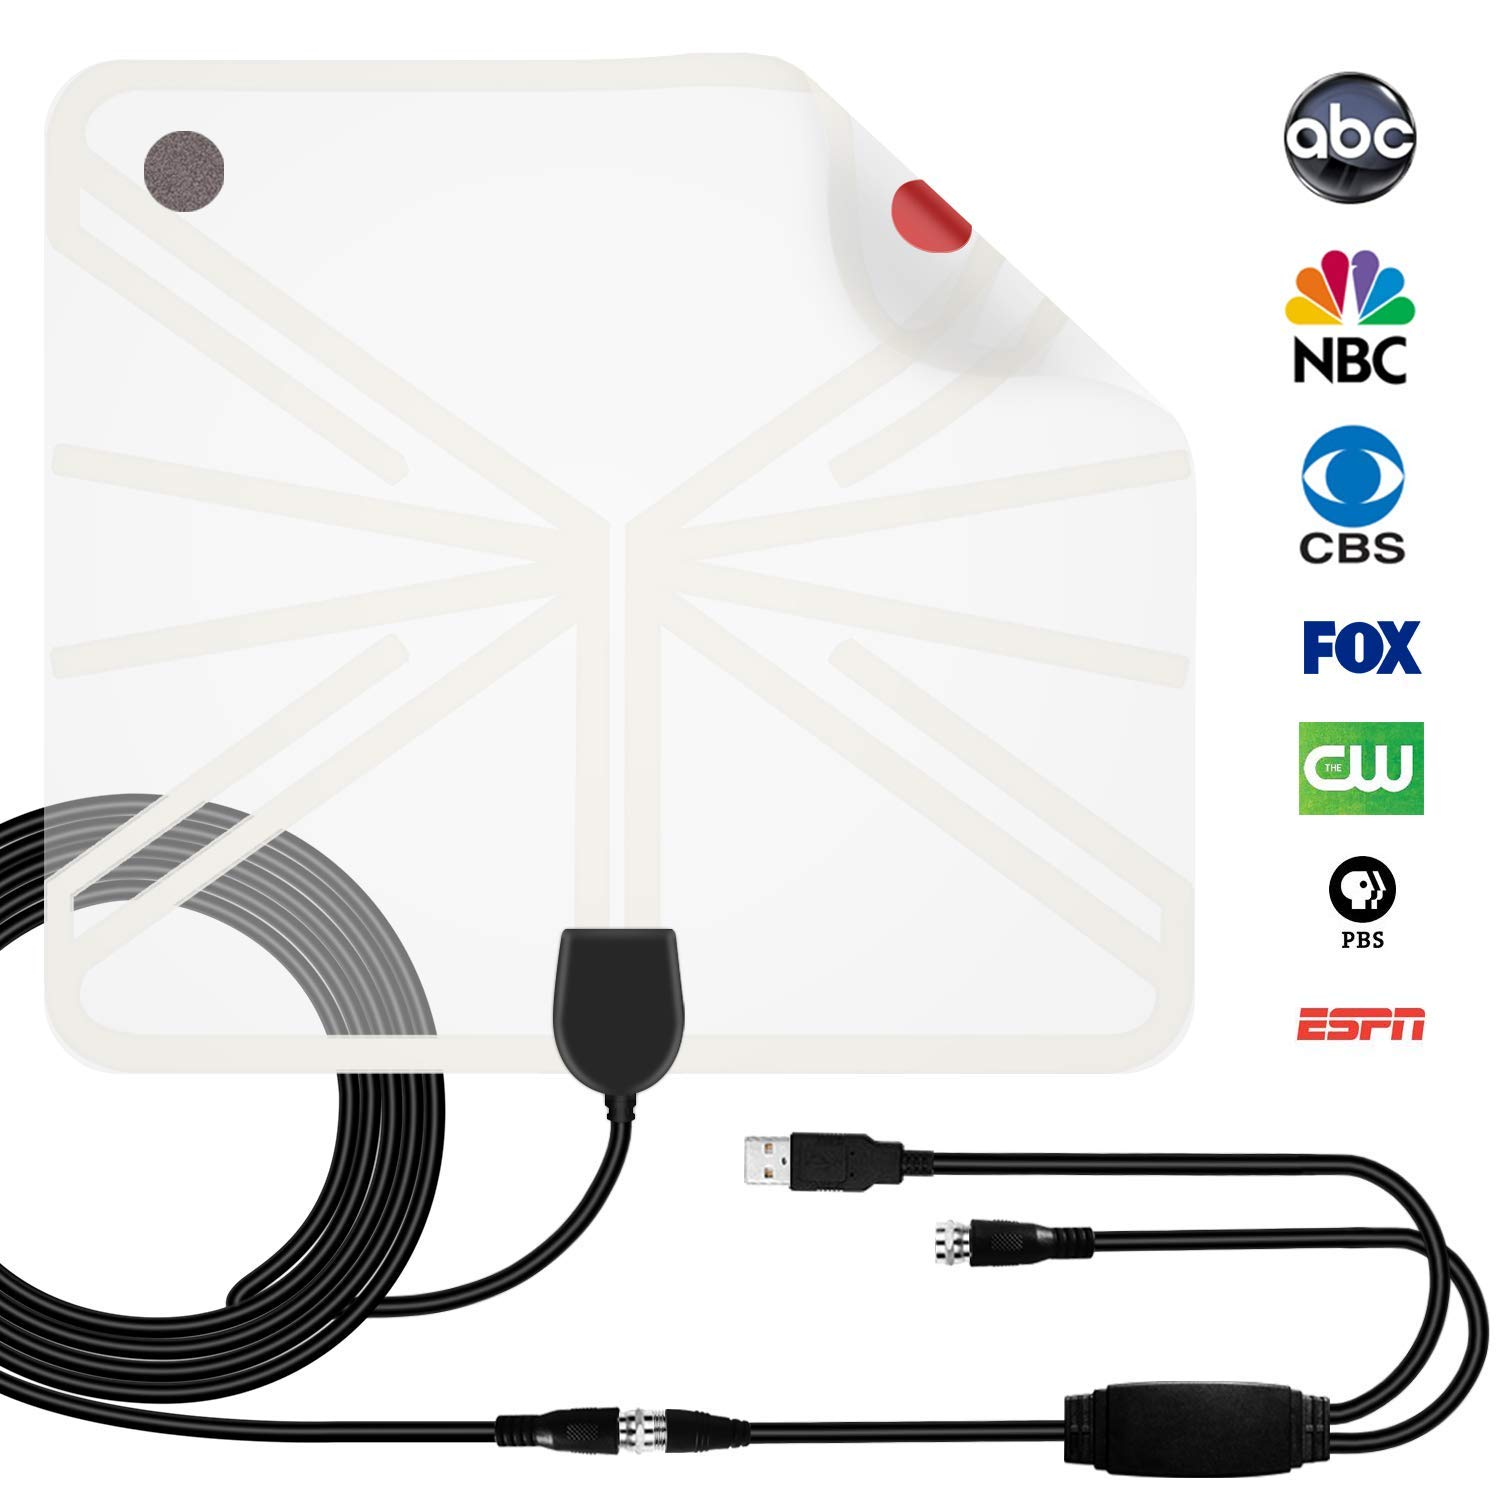 HEIRBLS TV Antenna, 50 Mile Range Amplified HDTV Antenna with Detachable Amplifier Signal Booster and 10FT Coaxial Cable - Transparent